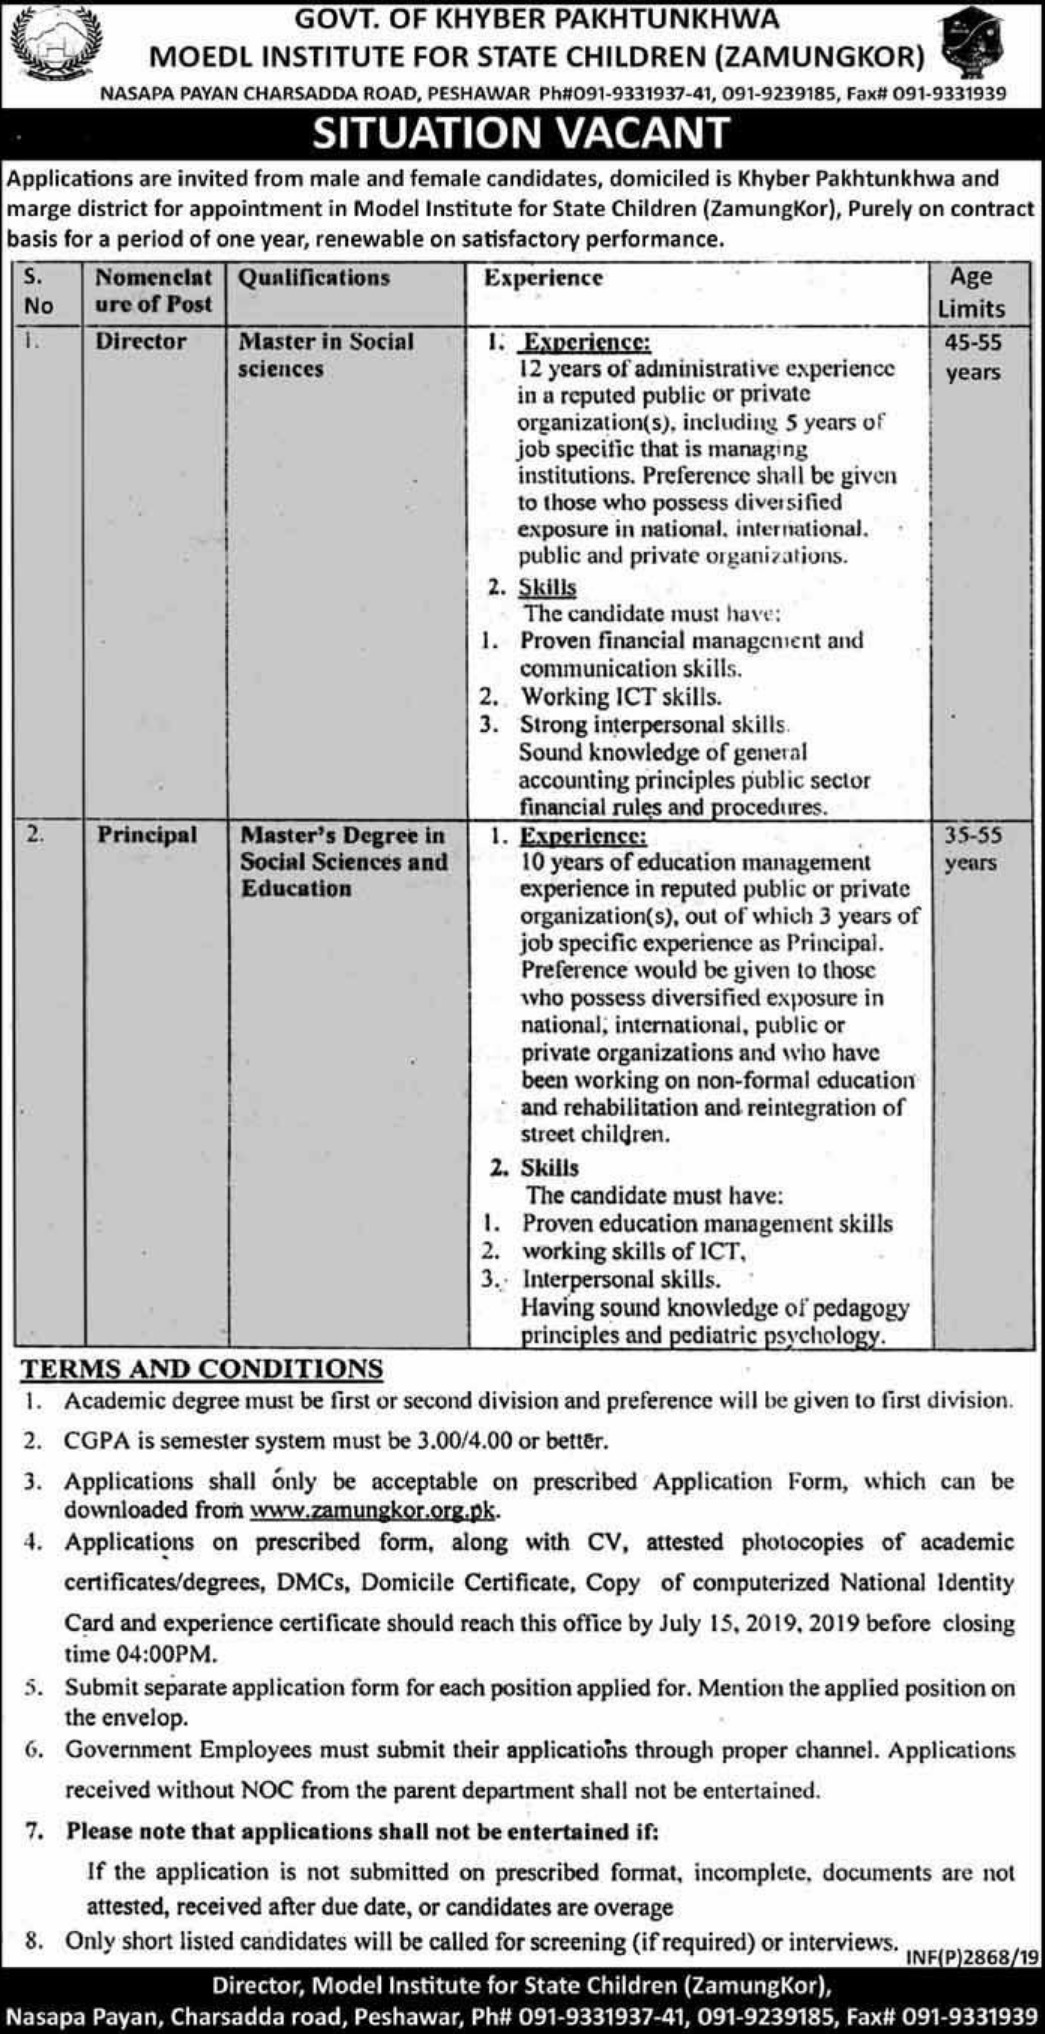 Zamungkor Model Institute for State Children Peshawar Jobs 2019 Govt of Khyber Pakhtunkhwa